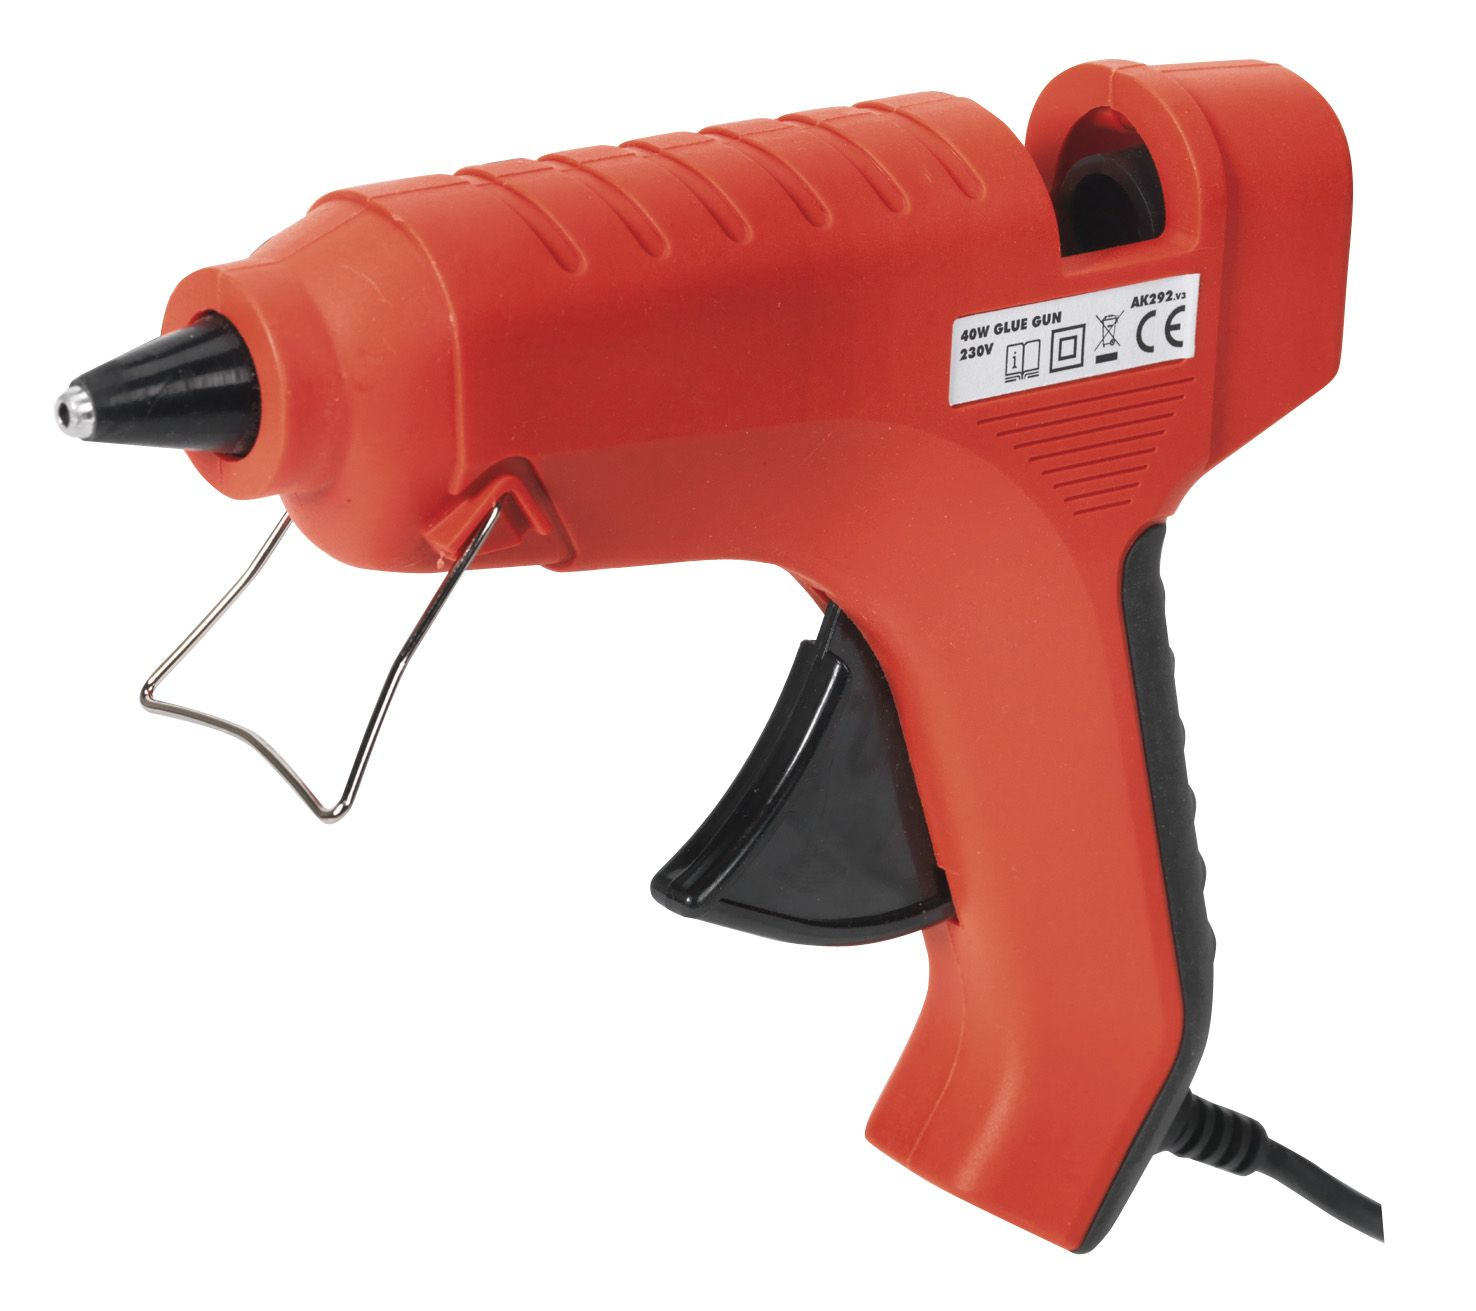 Sealey Glue Gun 40W 230V